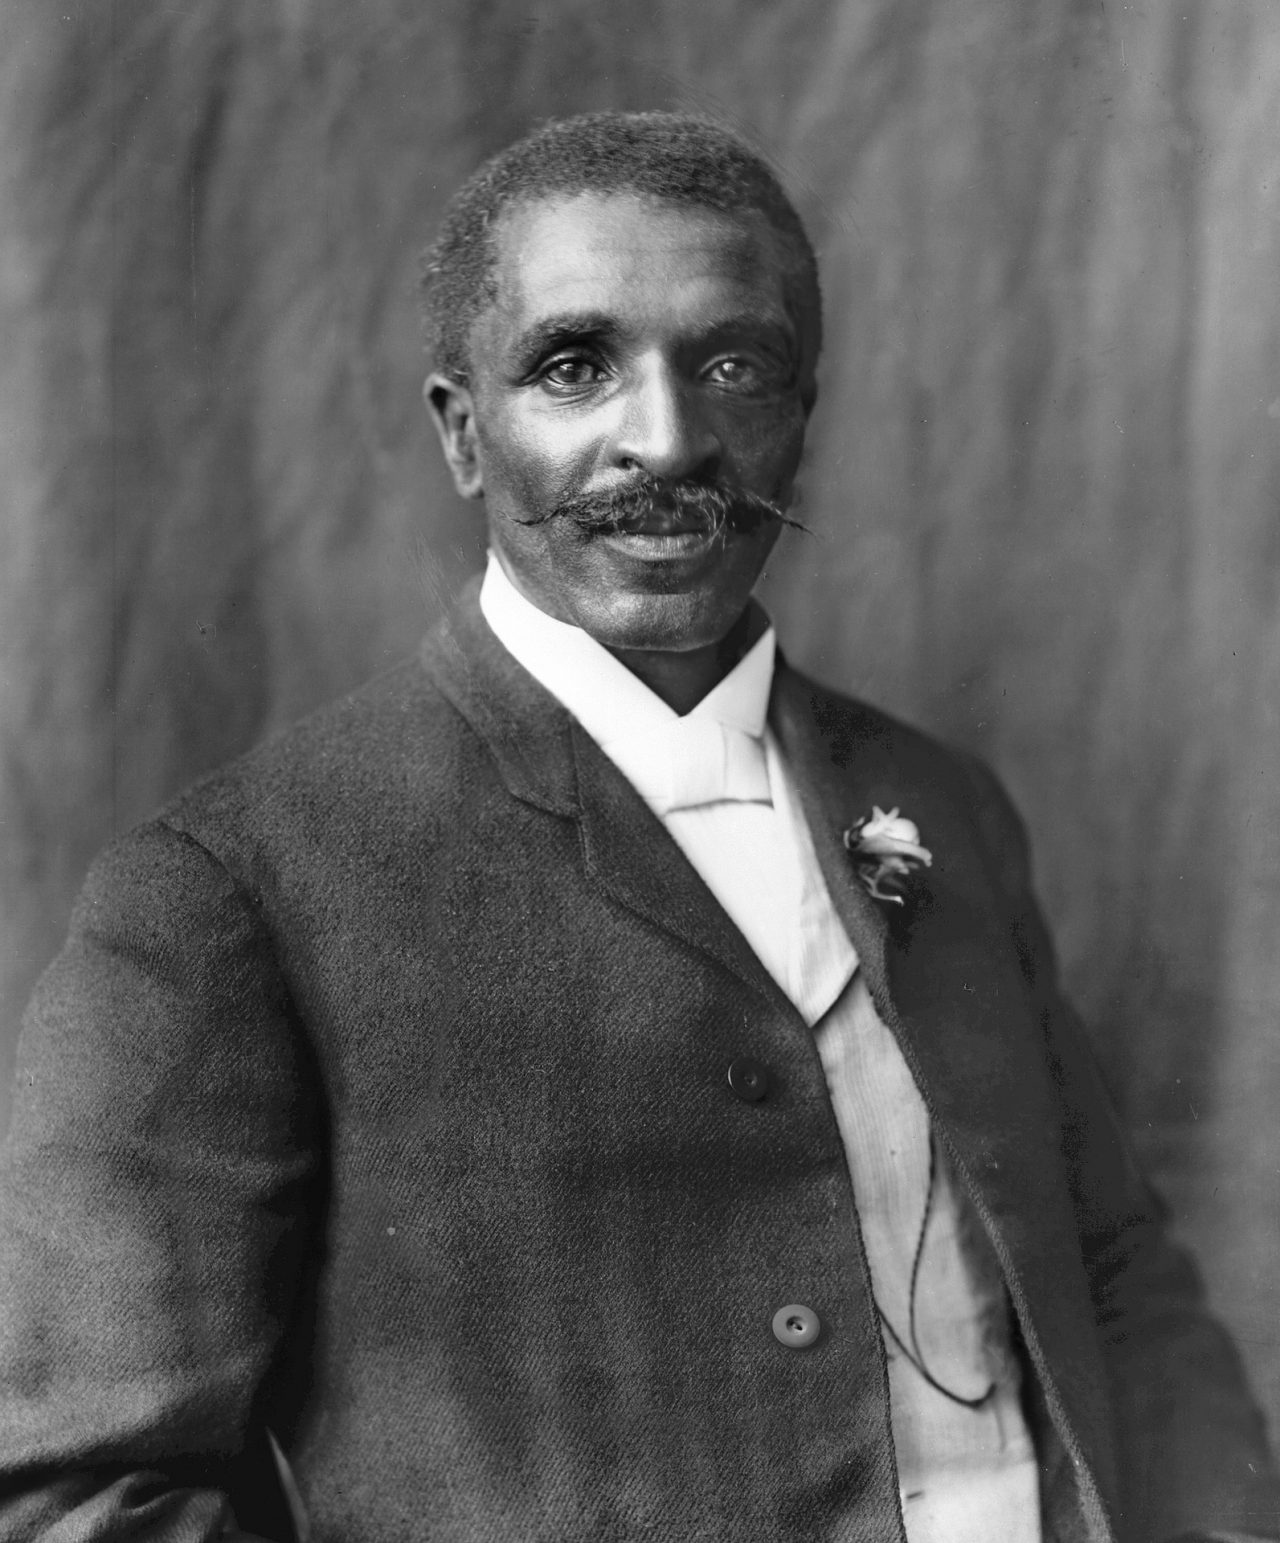 George-Washington-Carver-2-1280x1543.jpg